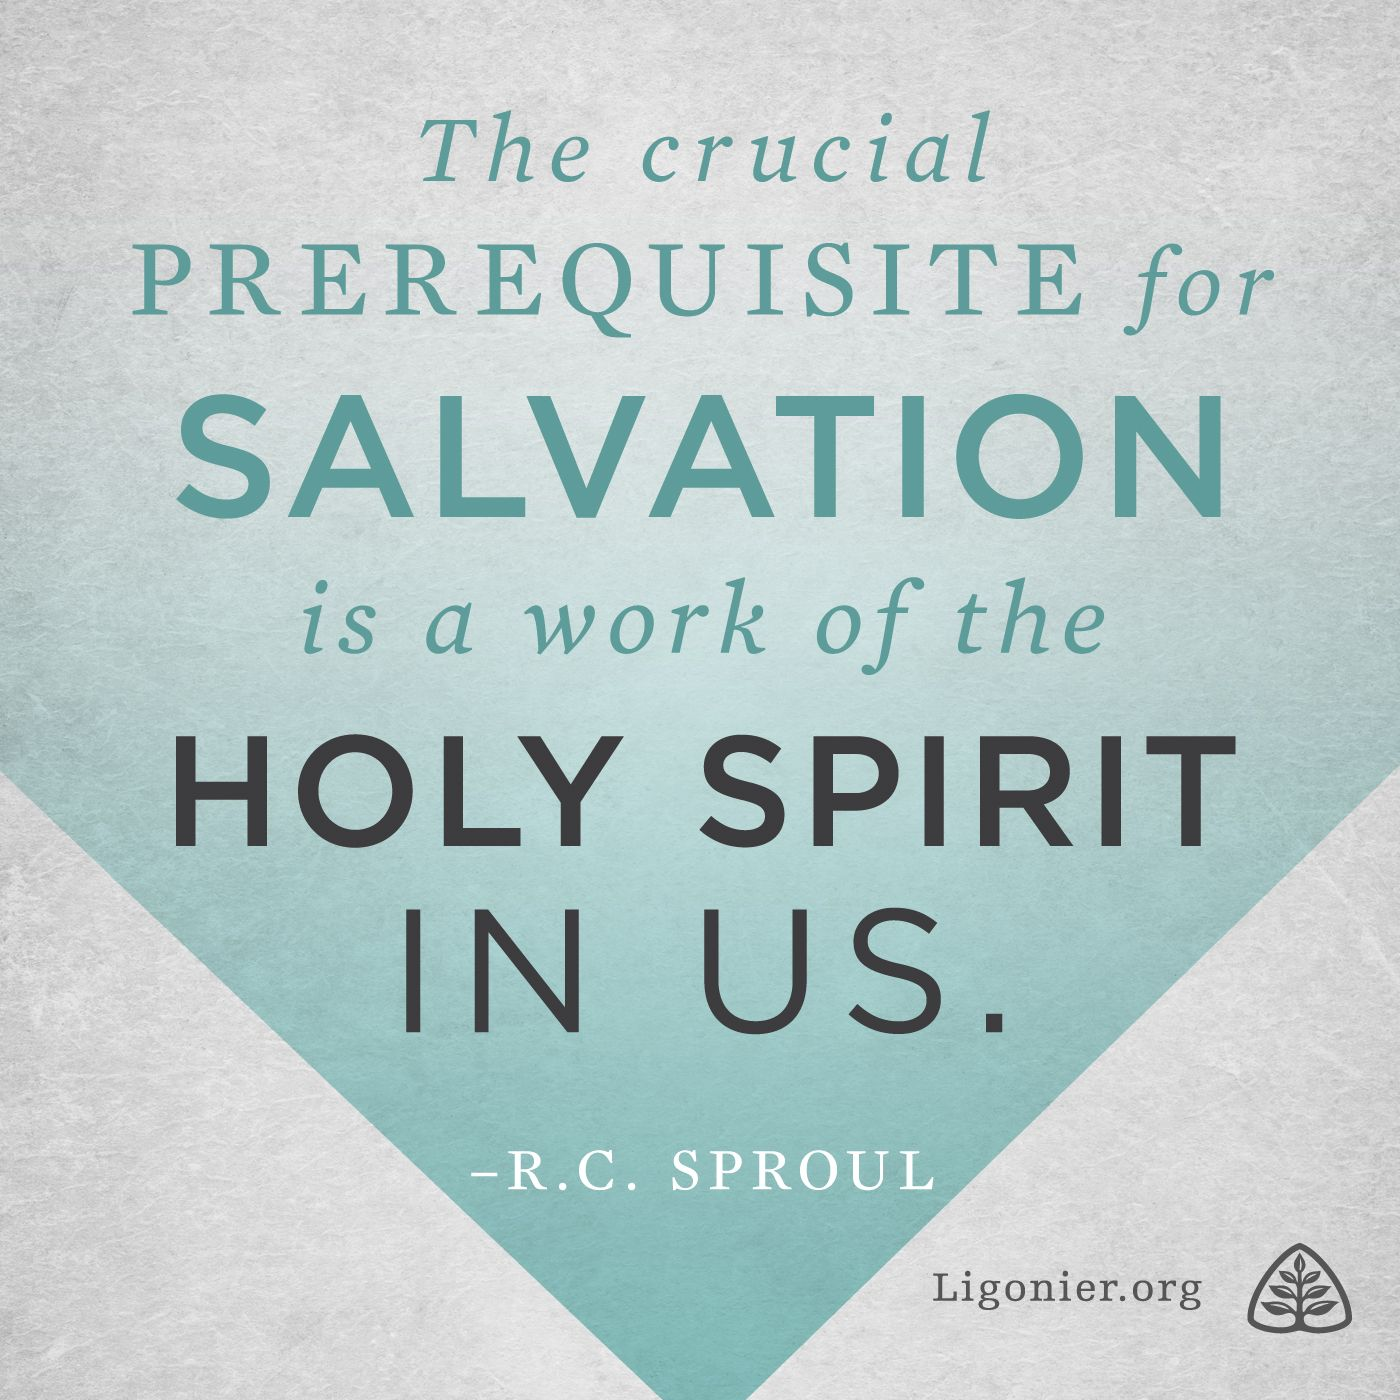 the work of the holy spirit in Because of this widespread confusion about the ministry of the holy spirit, it is essential that we learn from our lord as he teaches how the holy spirit will work in the disciples and, by extension, in the church, after christ's ascension into heaven.